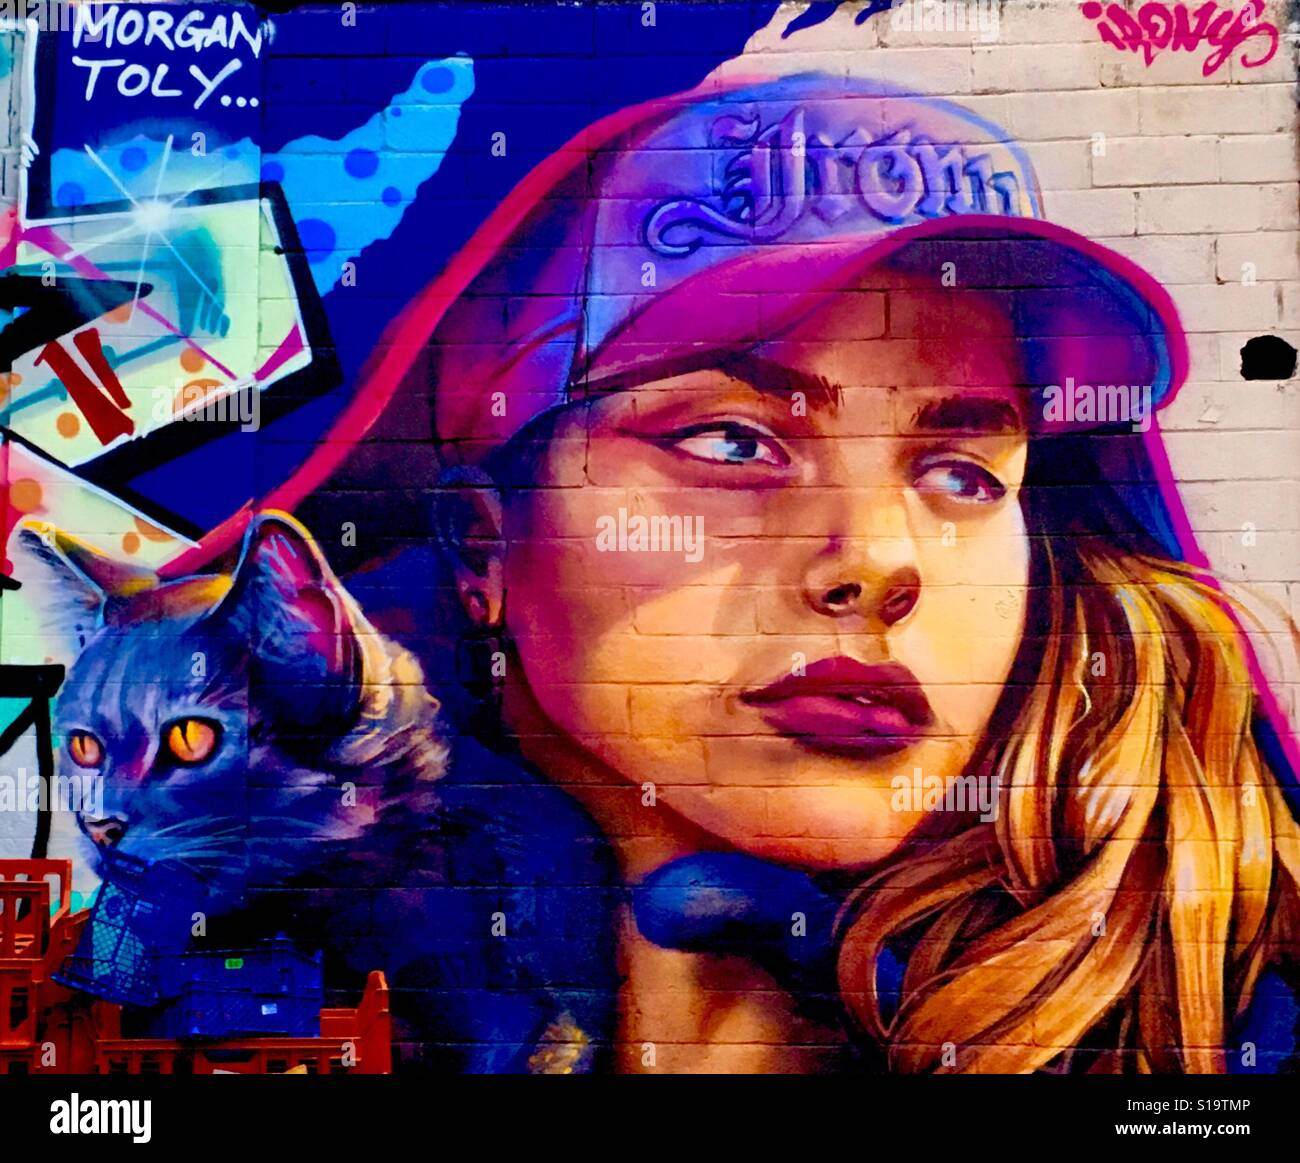 Young Women with Cat Street Art Tooting, London - Stock Image